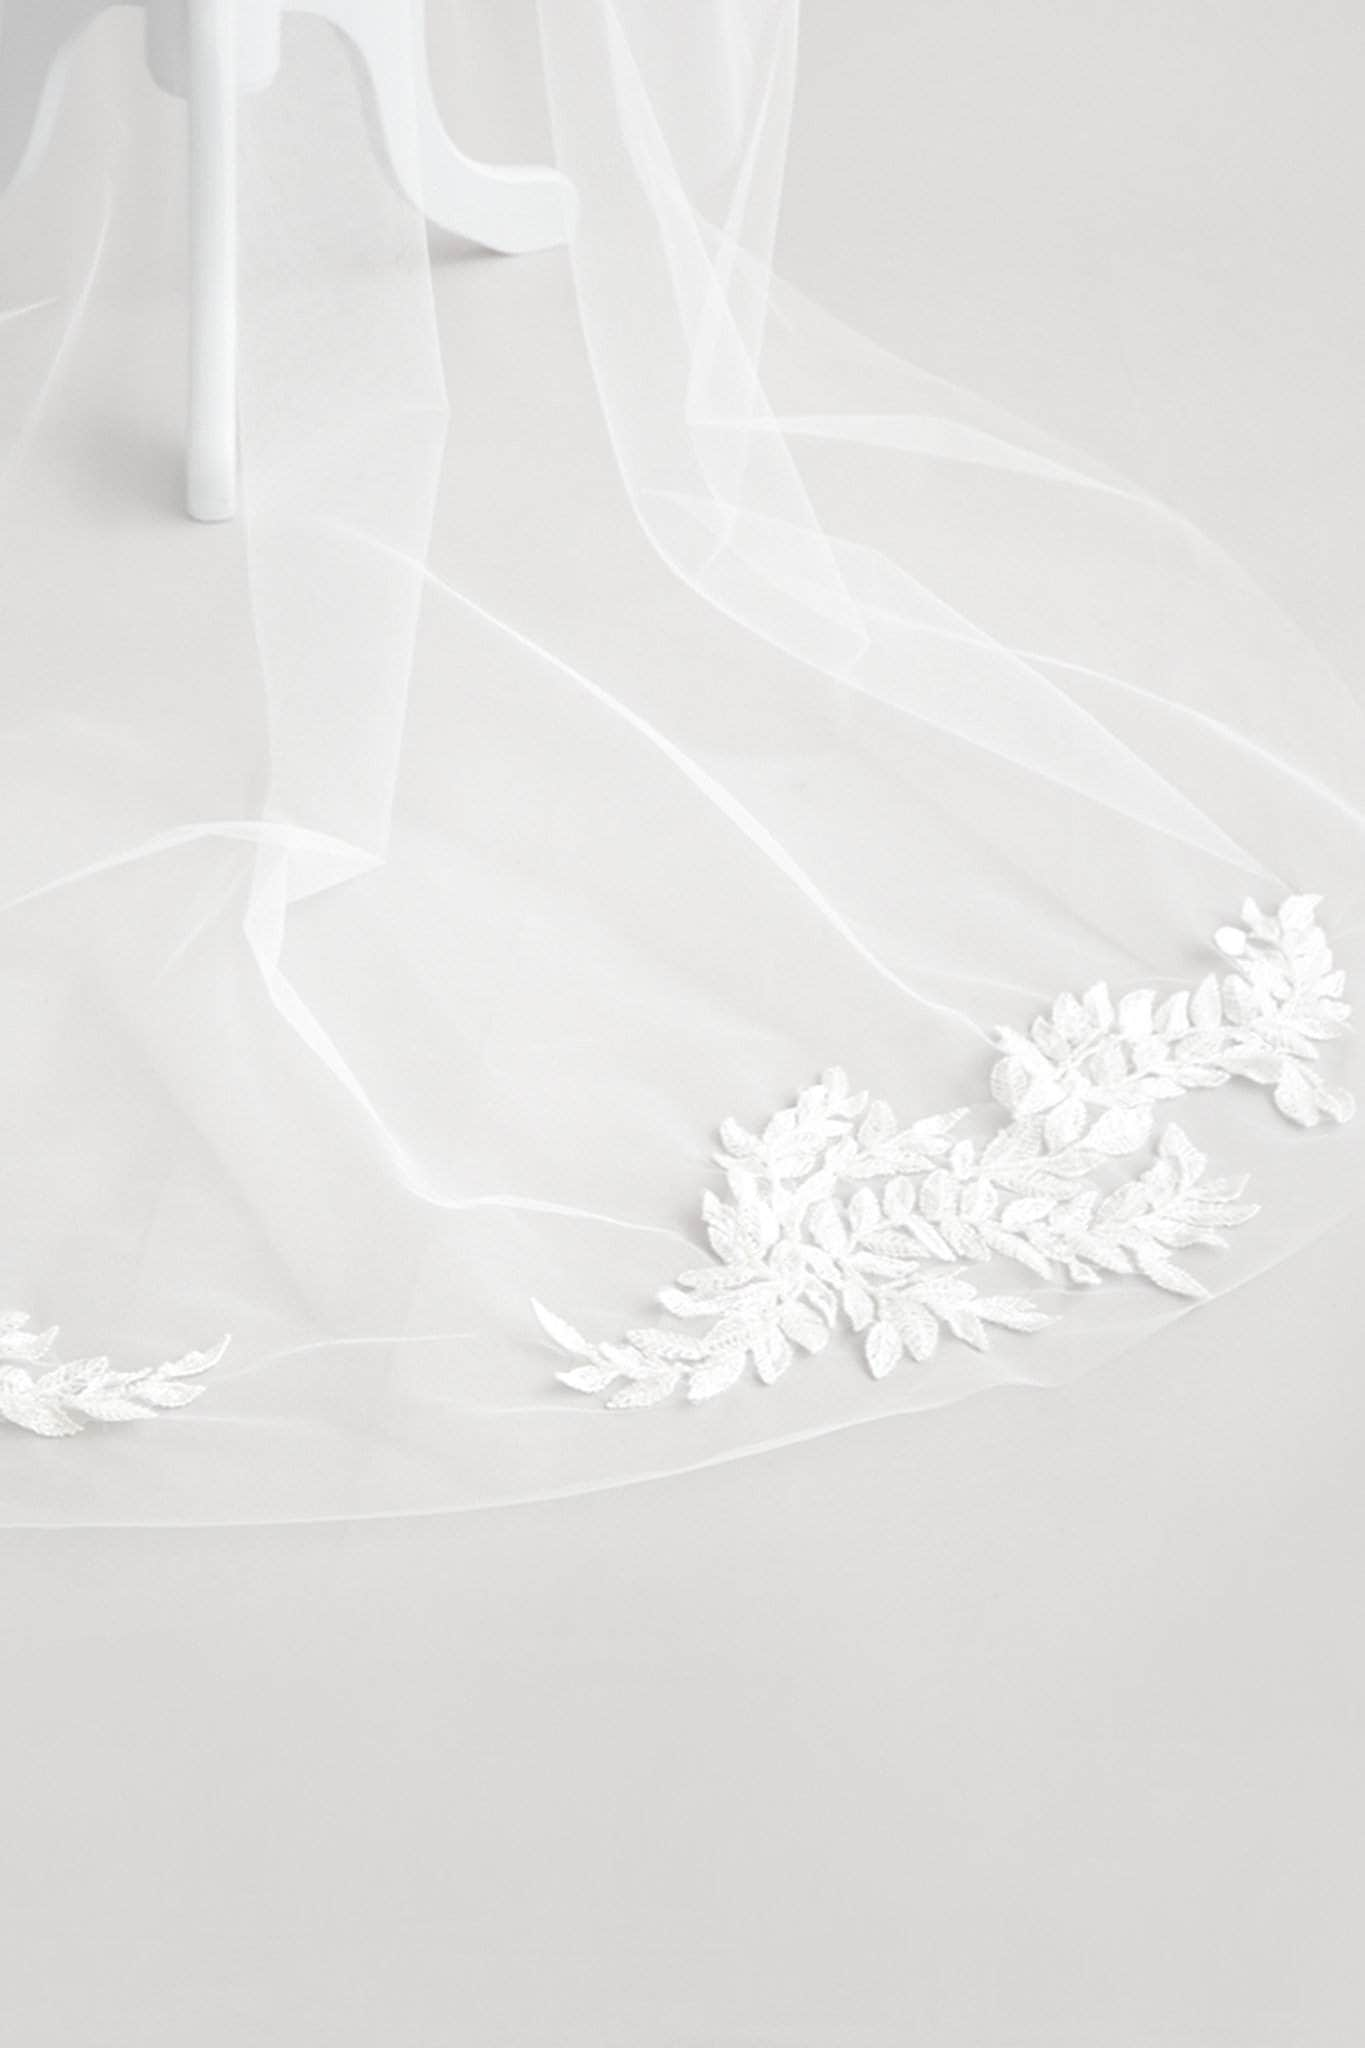 Wedding Veil Beaded Leaf Motif Barely There Wedding Veil - 'Elder'